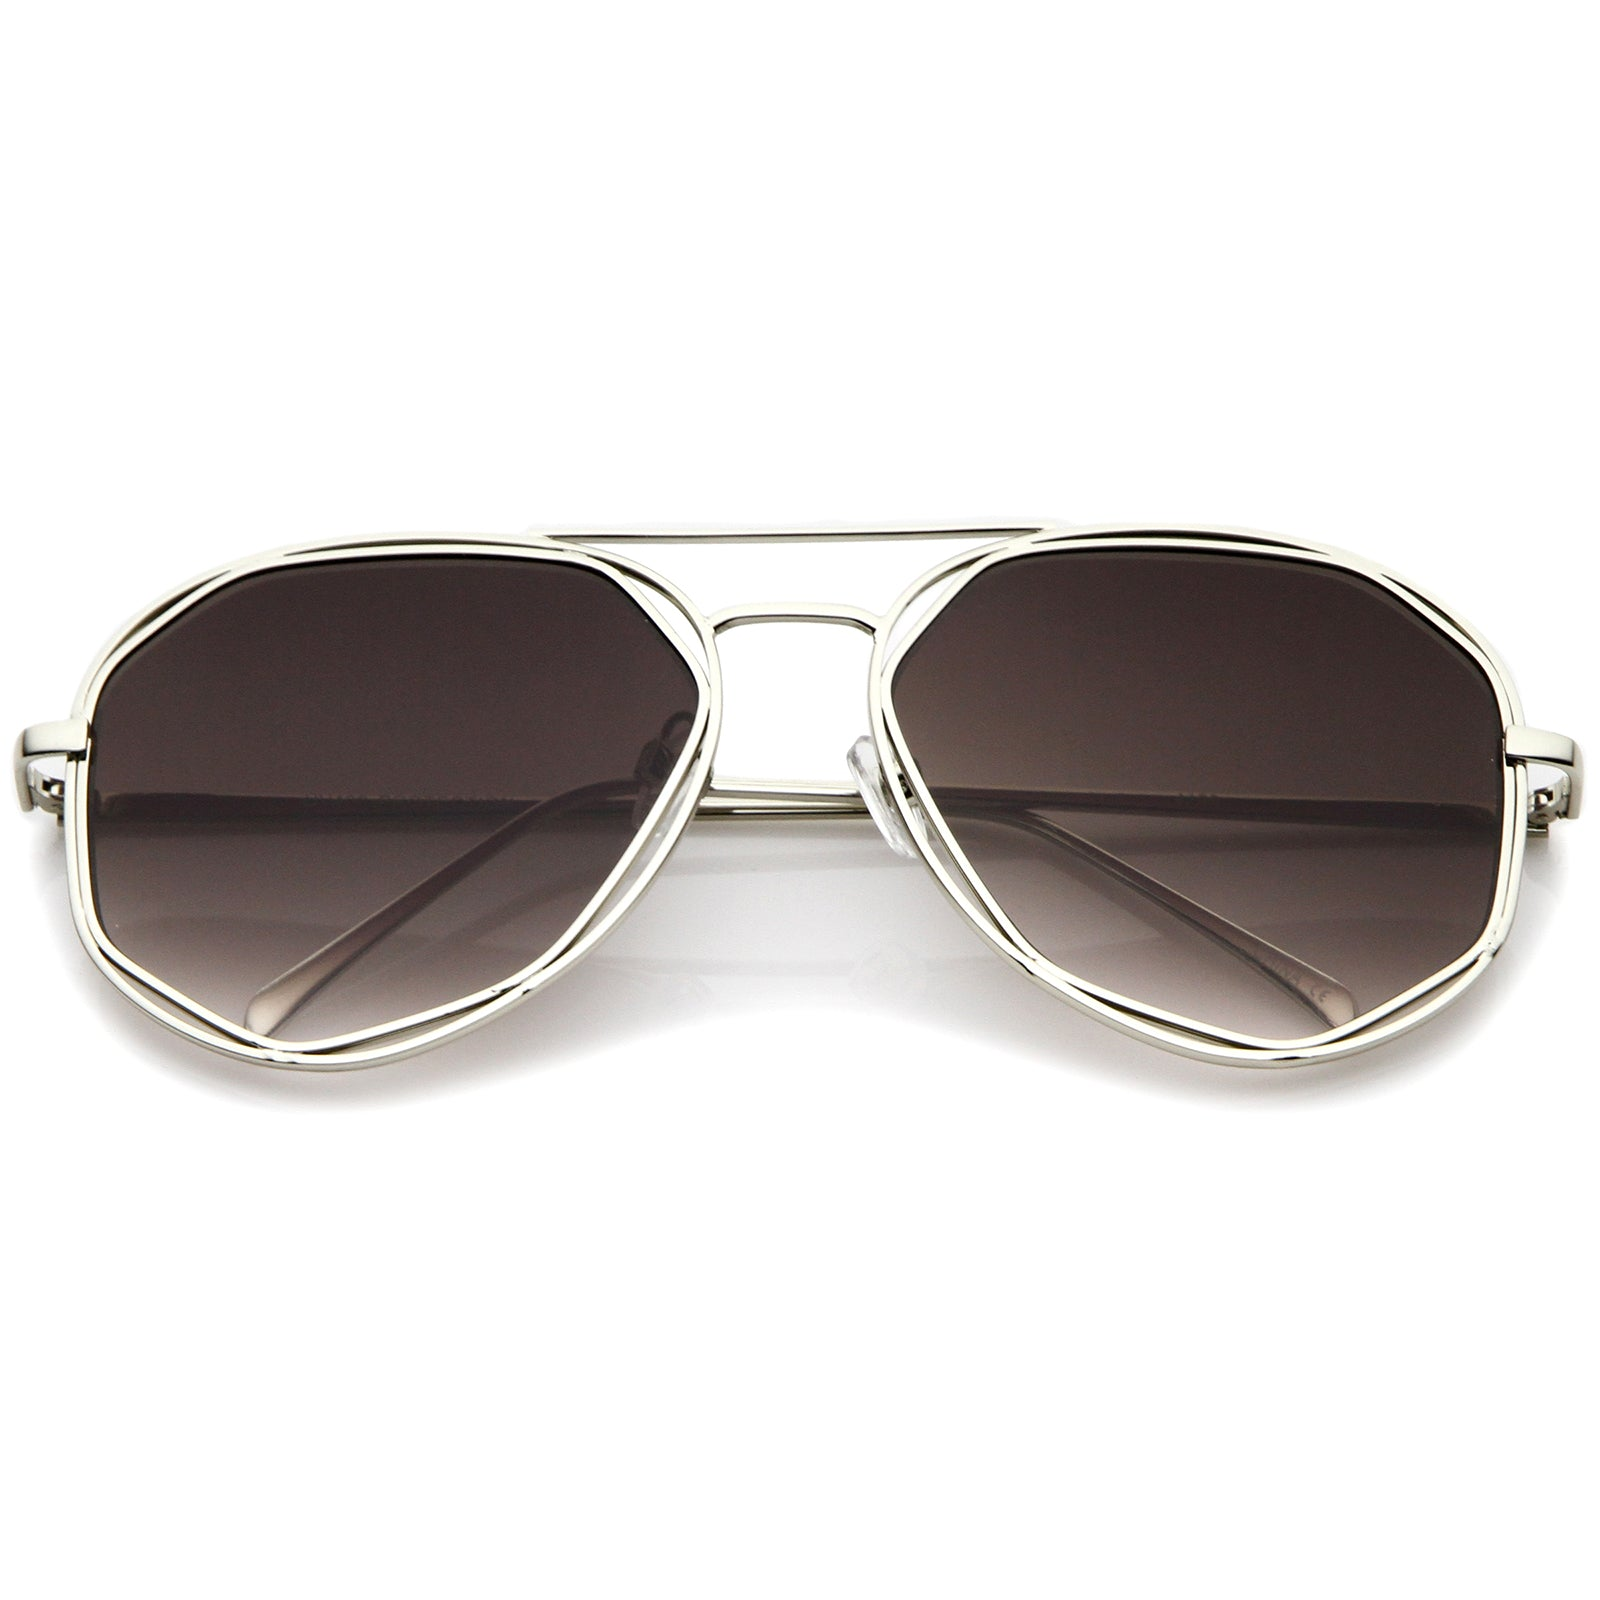 Geometric Hexagonal Metal Frame Neutral Colored Flat Lens Aviator Sunglasses 60mm - sunglass.la - 6